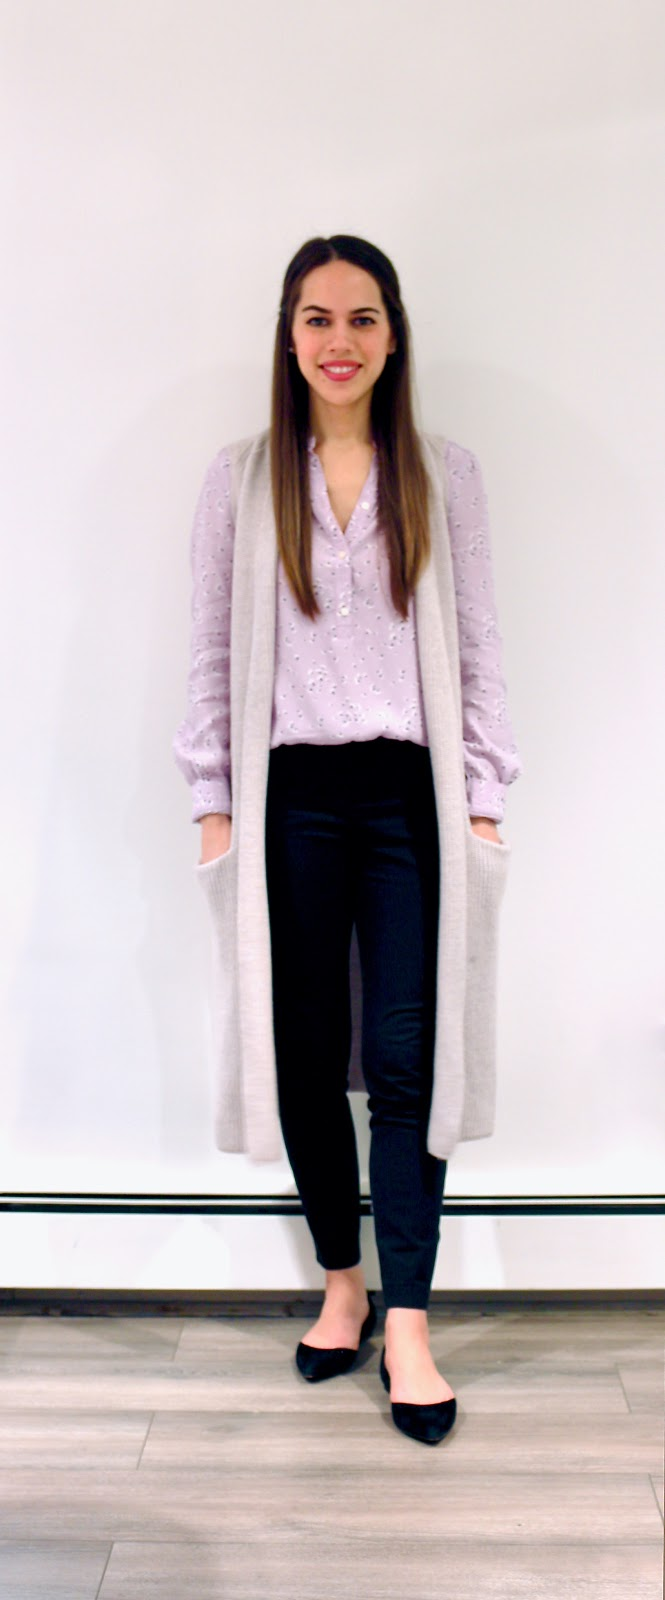 Jules in Flats - Lilac Floral Blouse with Long Knit Vest (Business Casual Winter Workwear on a Budget)